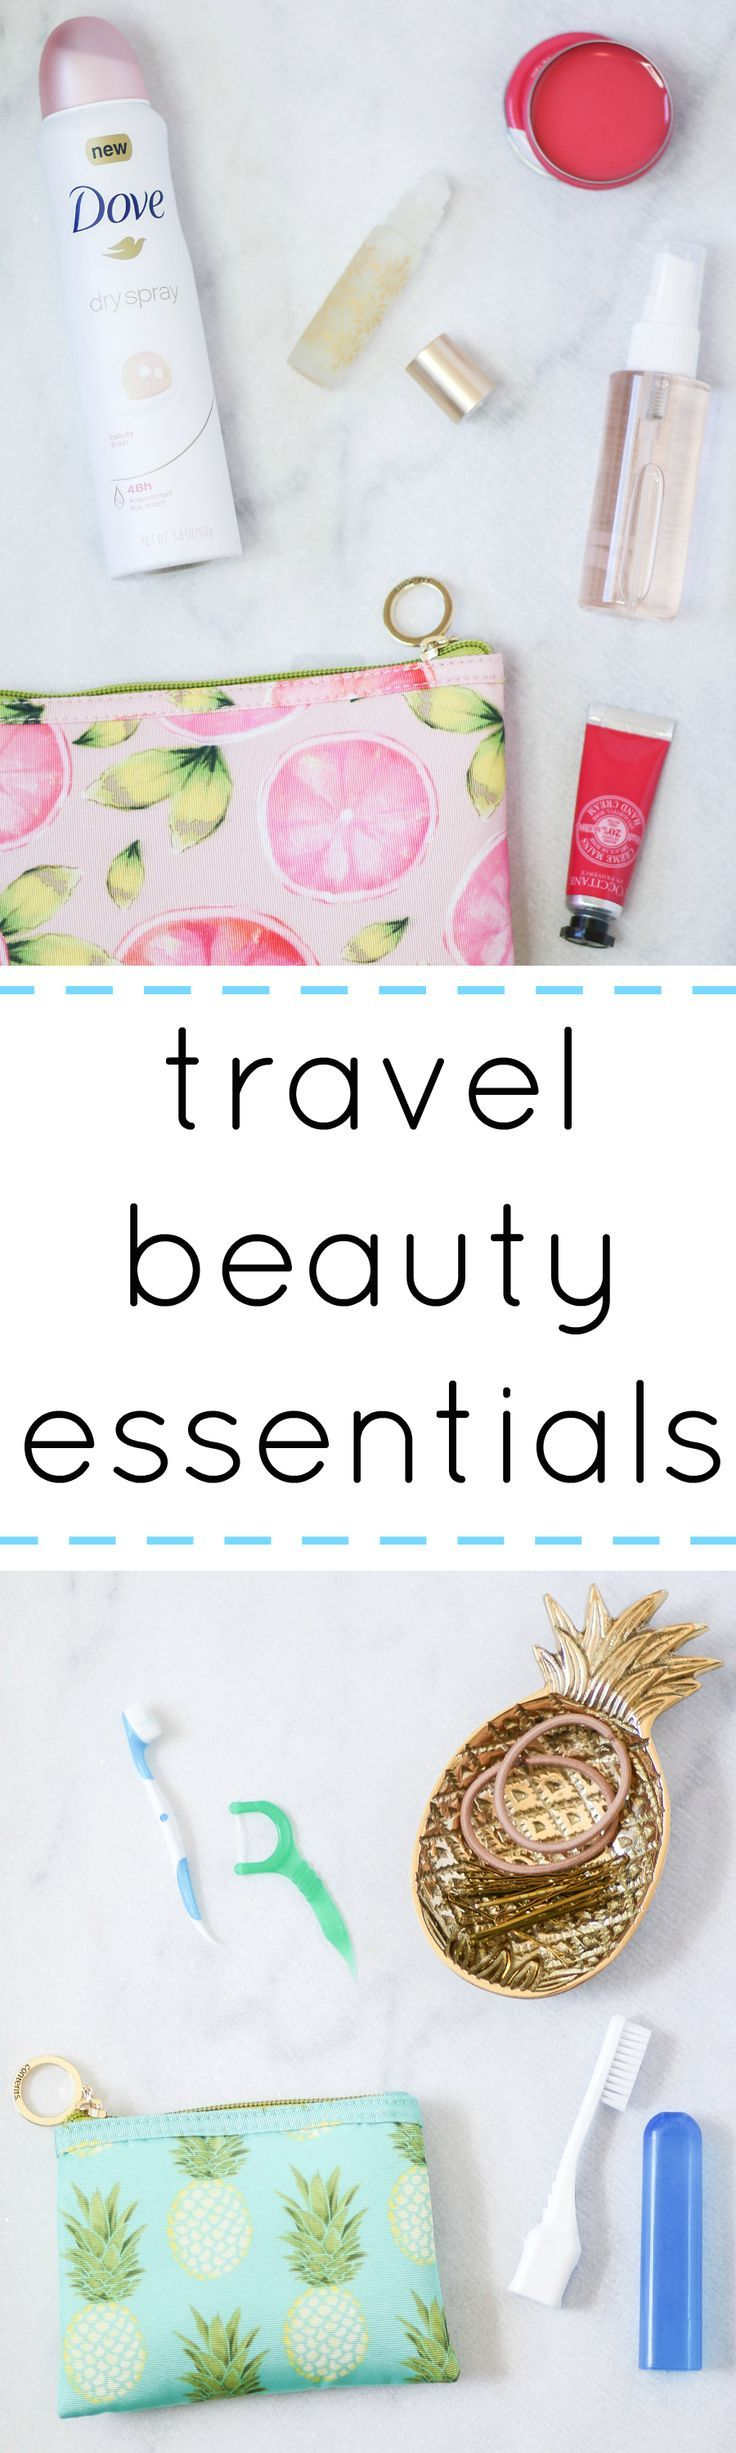 After a long flight, I look like a hot mess. Thankfully, there are a few fantastic travel beauty products that help me refresh my look in no time! Click through to see all of my travel beauty essentials including the @dove dry sprays! Thanks to Lunchbox for sponsoring this post!